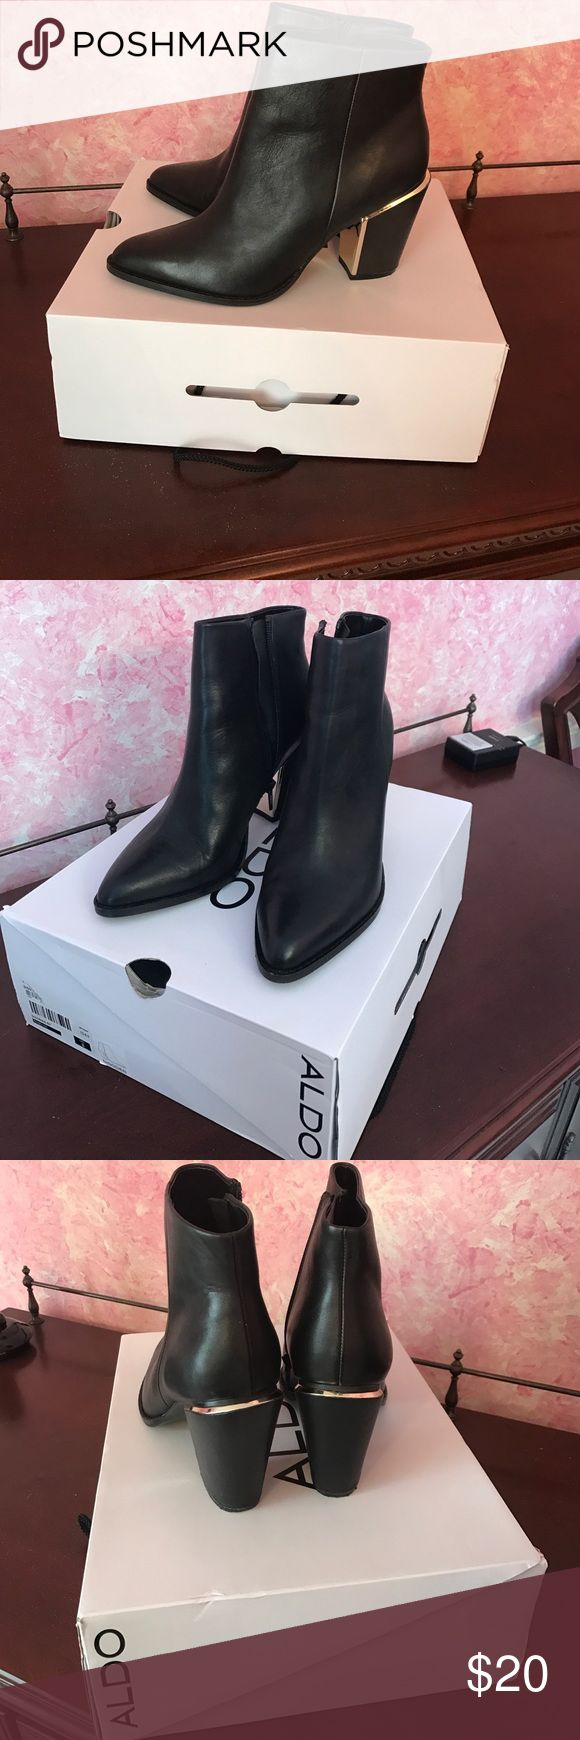 Aldo Ankle Boots Aldo, size 8, short ankle boots, worn once. Aldo Shoes Ankle Boots & Booties